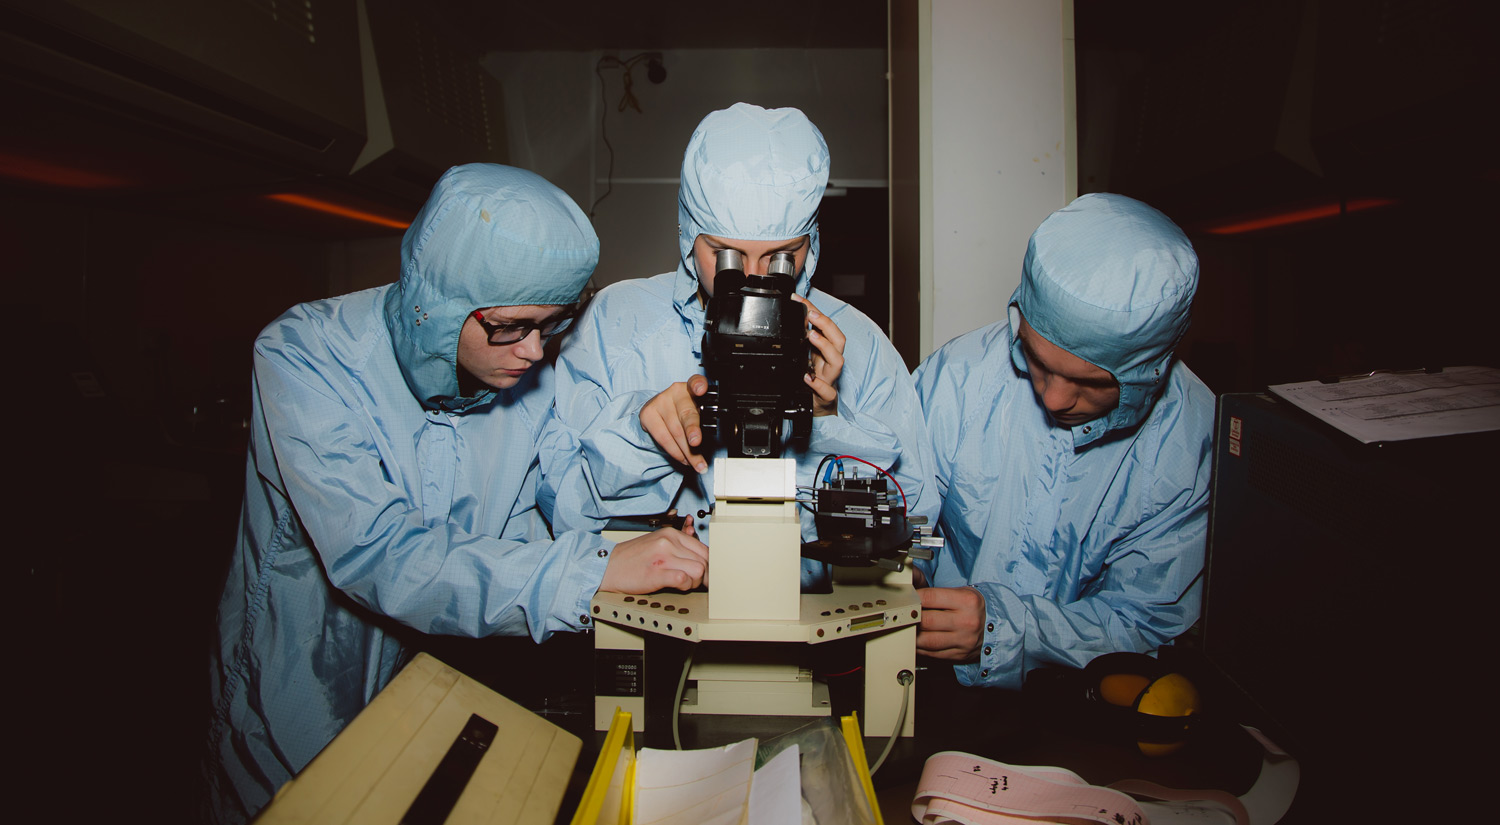 Three electronics students with lab coats using a microscope